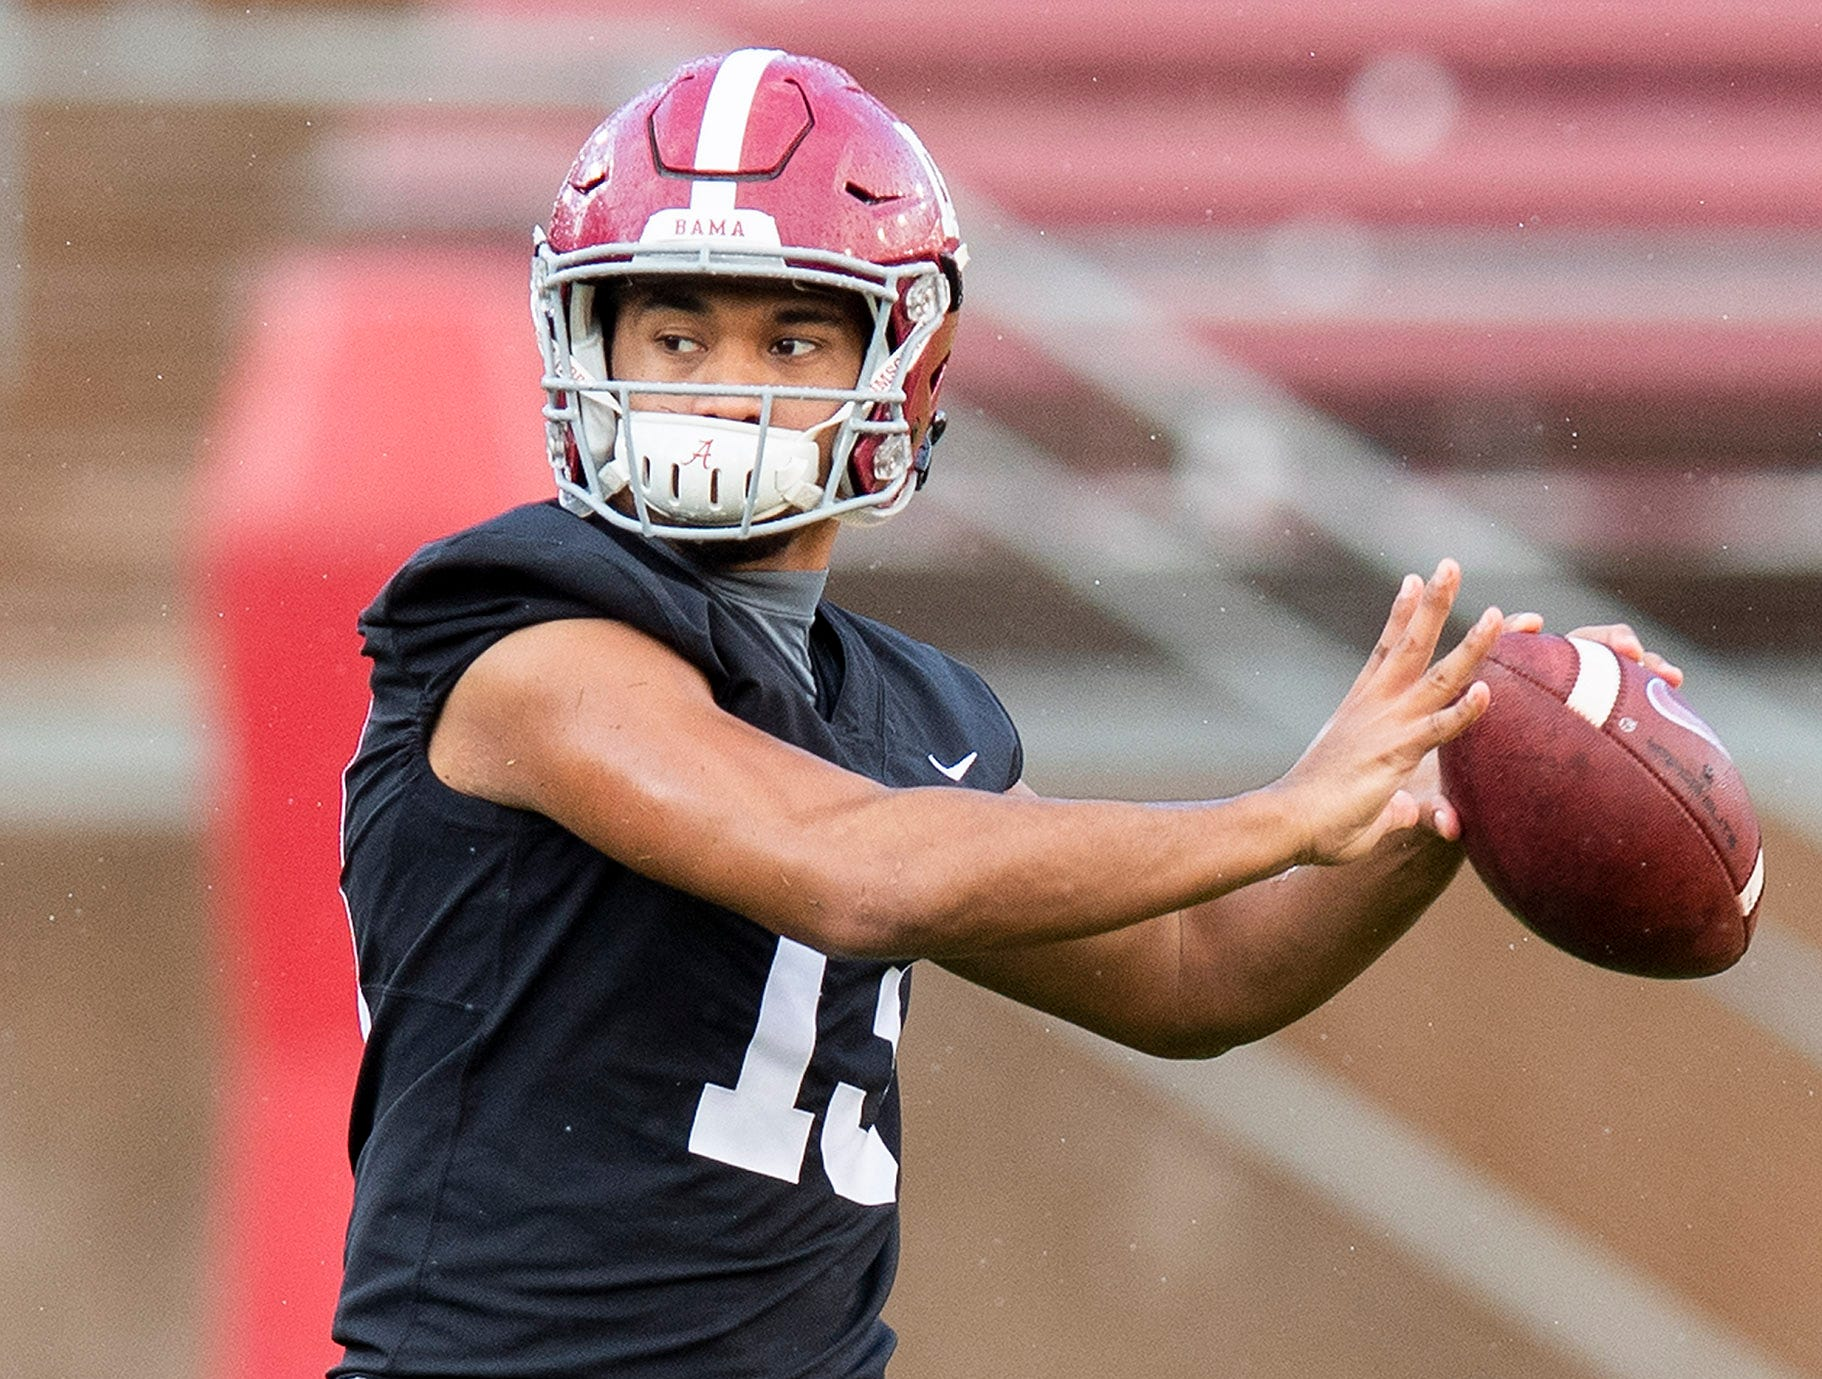 Alabama quarterback Tua Tagovailoa (13) passes as Alabama practices on the Stanford campus in Stanford, Ca., on Saturday January 5, 2019.